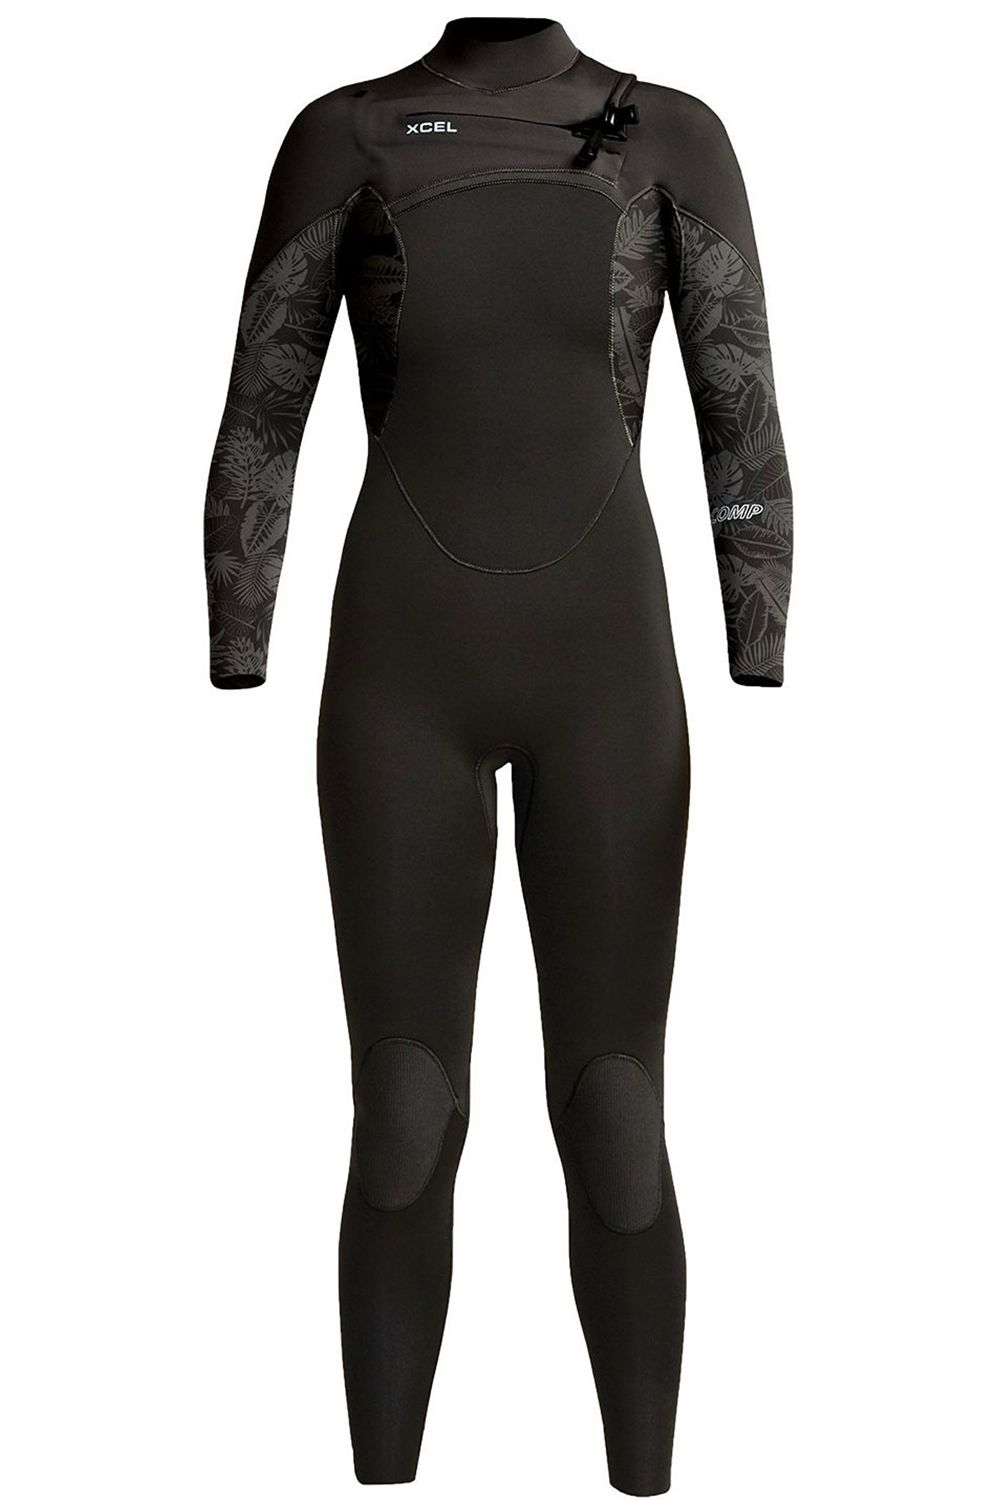 Xcel Wetsuit W COMP 3/2MM - FULLSUIT THERMO LITE Black/Black Mixed Greens Print